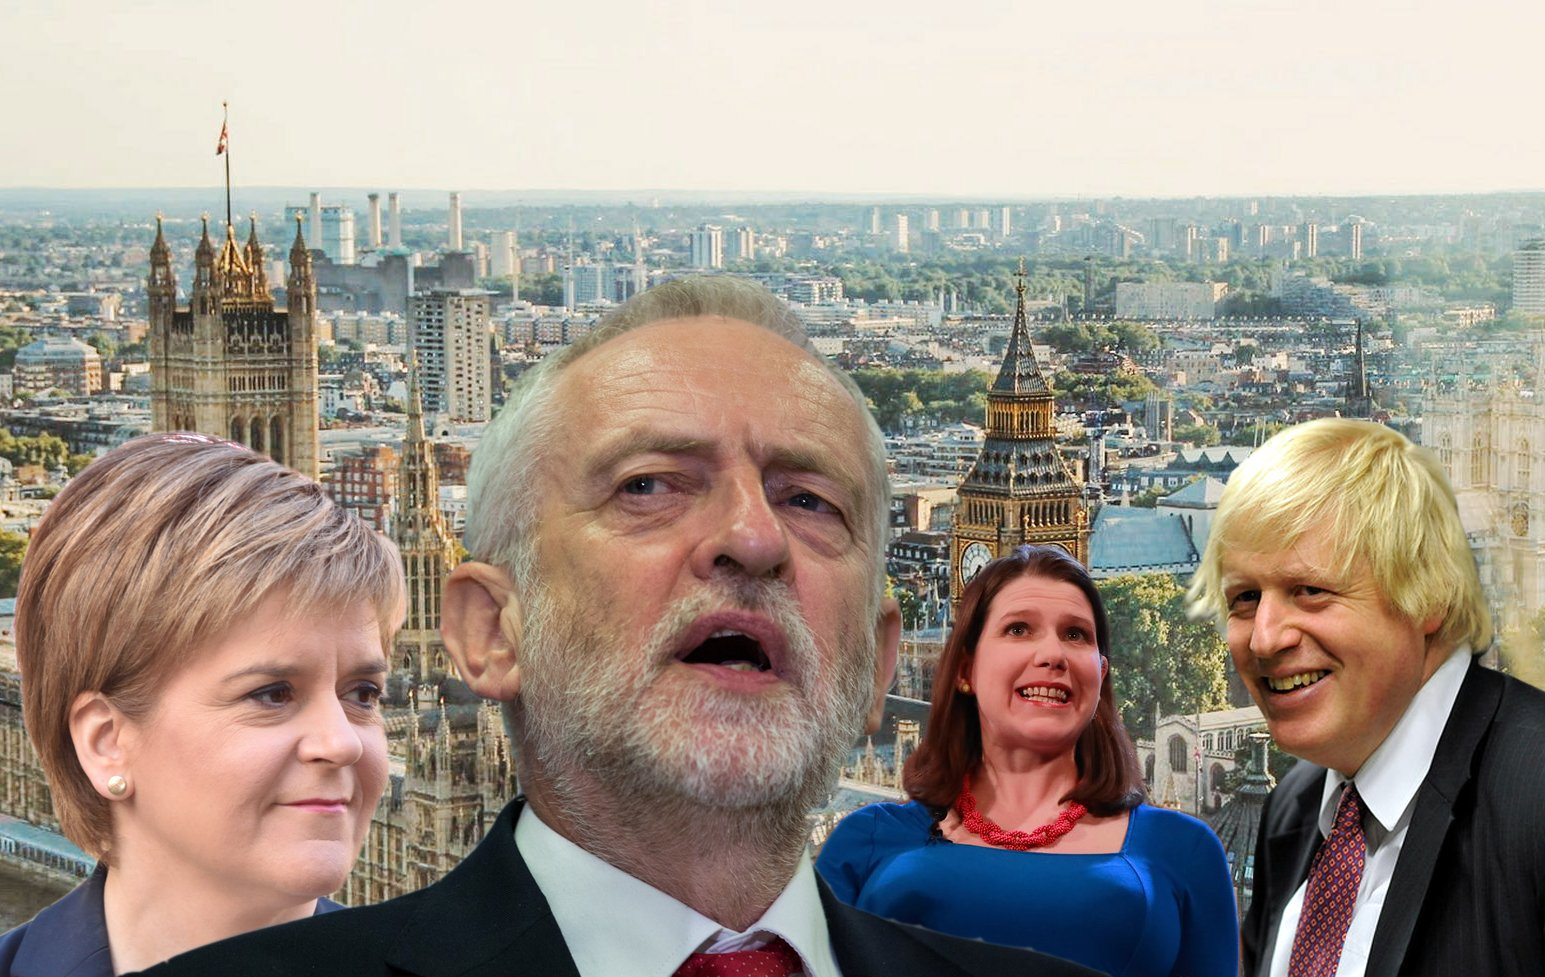 Landlords, which party will you vote for in the 2019 General Election?